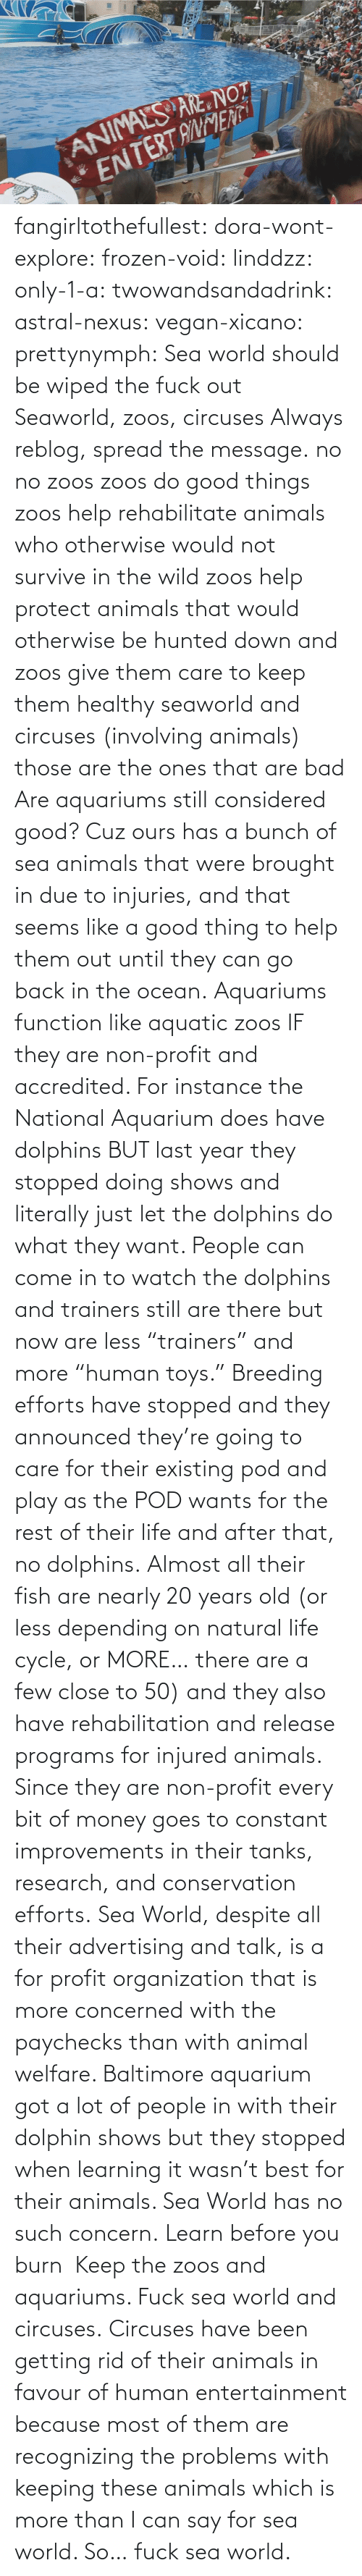 "Fish: fangirltothefullest:  dora-wont-explore:  frozen-void:  linddzz:  only-1-a:  twowandsandadrink:  astral-nexus:  vegan-xicano:  prettynymph:  Sea world should be wiped the fuck out  Seaworld, zoos, circuses  Always reblog, spread the message.  no no zoos zoos do good things zoos help rehabilitate animals who otherwise would not survive in the wild zoos help protect animals that would otherwise be hunted down and zoos give them care to keep them healthy seaworld and circuses (involving animals) those are the ones that are bad  Are aquariums still considered good? Cuz ours has a bunch of sea animals that were brought in due to injuries, and that seems like a good thing to help them out until they can go back in the ocean.  Aquariums function like aquatic zoos IF they are non-profit and accredited. For instance the National Aquarium does have dolphins BUT last year they stopped doing shows and literally just let the dolphins do what they want. People can come in to watch the dolphins and trainers still are there but now are less ""trainers"" and more ""human toys."" Breeding efforts have stopped and they announced they're going to care for their existing pod and play as the POD wants for the rest of their life and after that, no dolphins. Almost all their fish are nearly 20 years old (or less depending on natural life cycle, or MORE… there are a few close to 50) and they also have rehabilitation and release programs for injured animals. Since they are non-profit every bit of money goes to constant improvements in their tanks, research, and conservation efforts. Sea World, despite all their advertising and talk, is a for profit organization that is more concerned with the paychecks than with animal welfare. Baltimore aquarium got a lot of people in with their dolphin shows but they stopped when learning it wasn't best for their animals. Sea World has no such concern.  Learn before you burn   Keep the zoos and aquariums. Fuck sea world and circuses.  Circuses have been getting rid of  their animals in favour of human entertainment because most of them are recognizing the problems with keeping these animals which is more than I can say for sea world. So… fuck sea world."